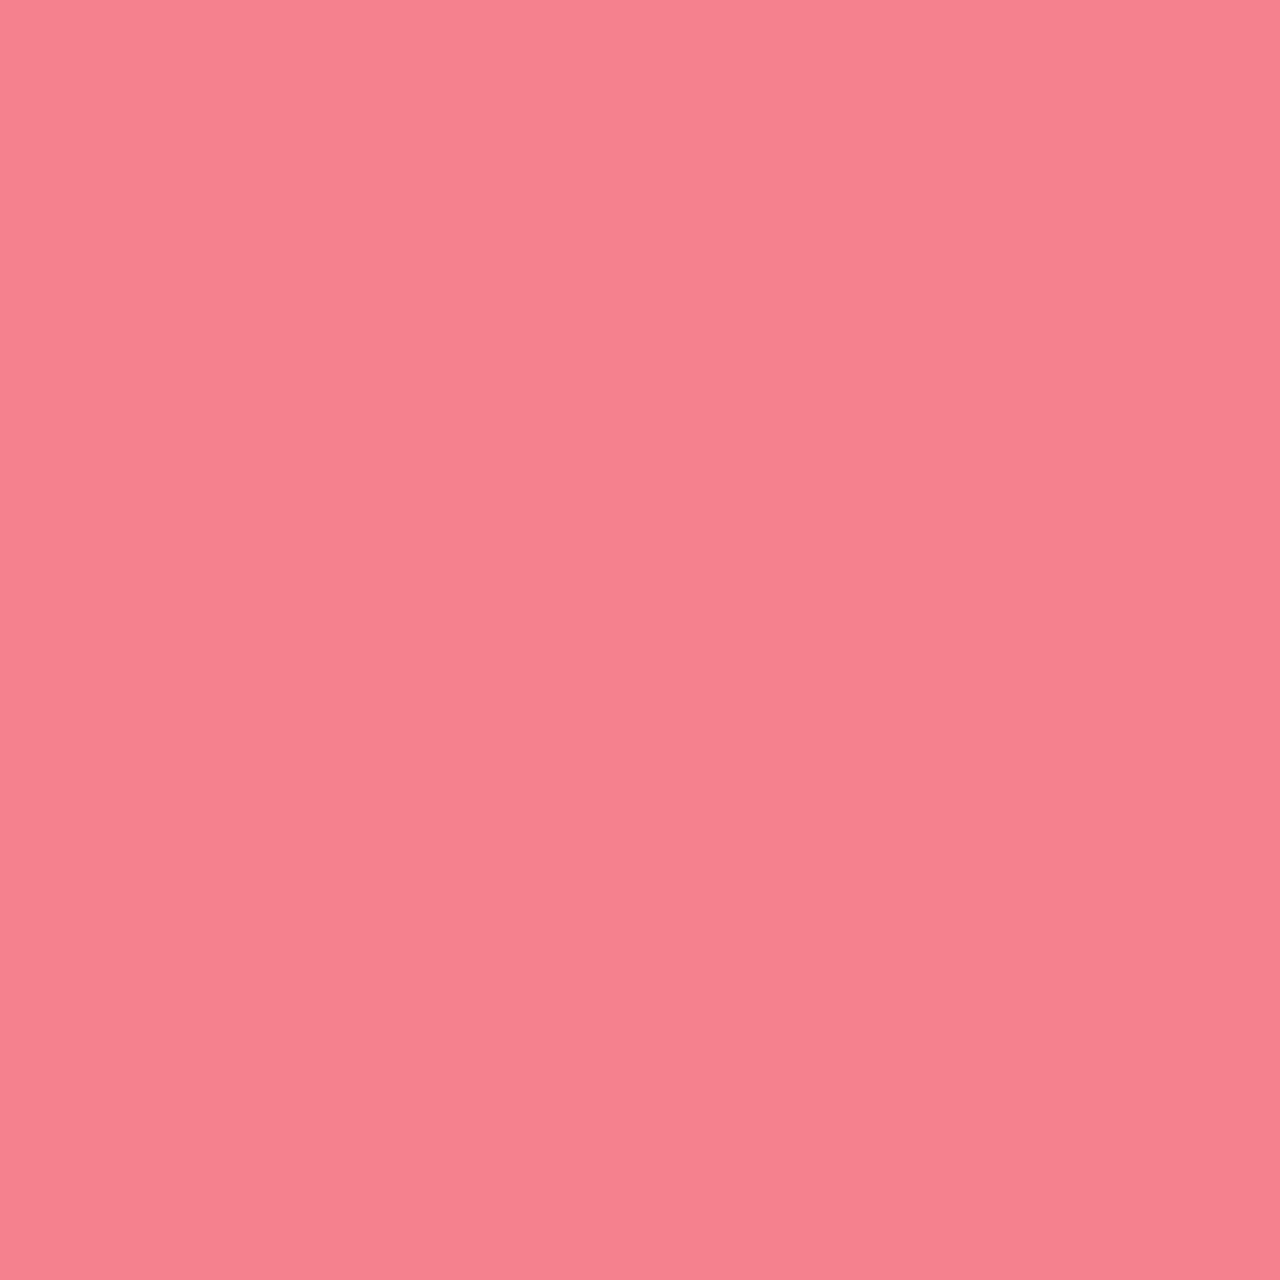 #0031 Rosco Gels Roscolux Salmon Pink, 20x24""